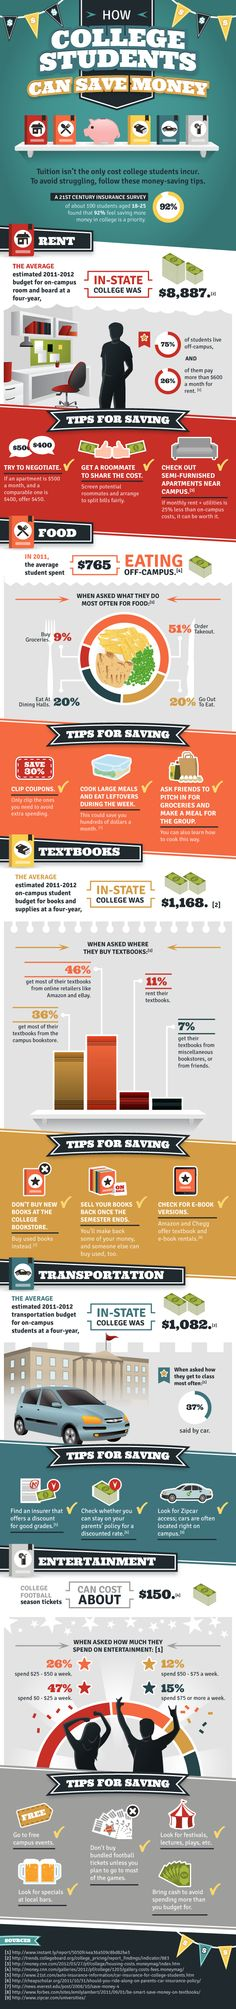 How College Students Can Save Money | NerdGraph Infographics